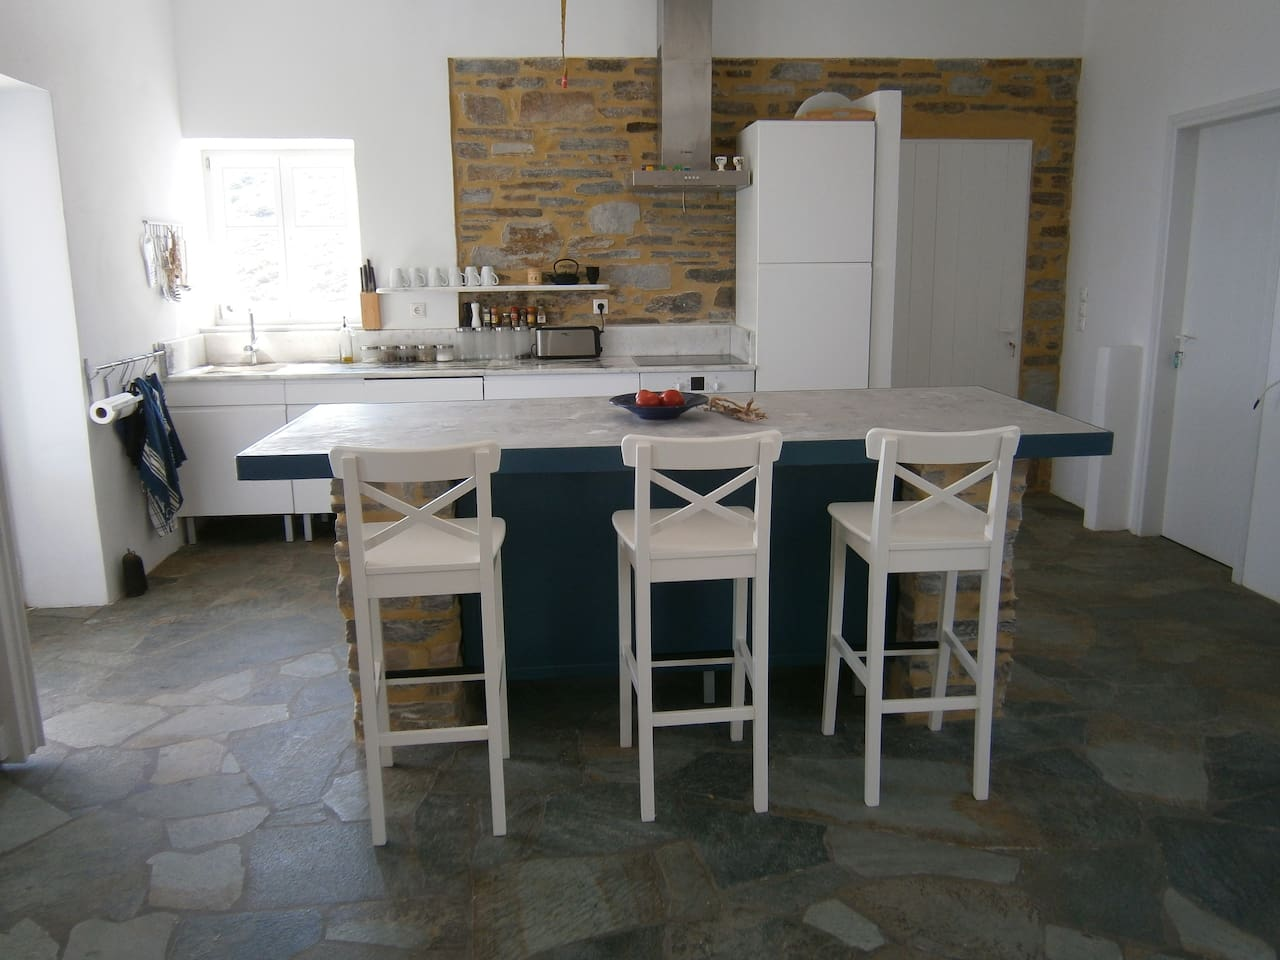 Kitchen island and stools: conducive towards easy going vacationing